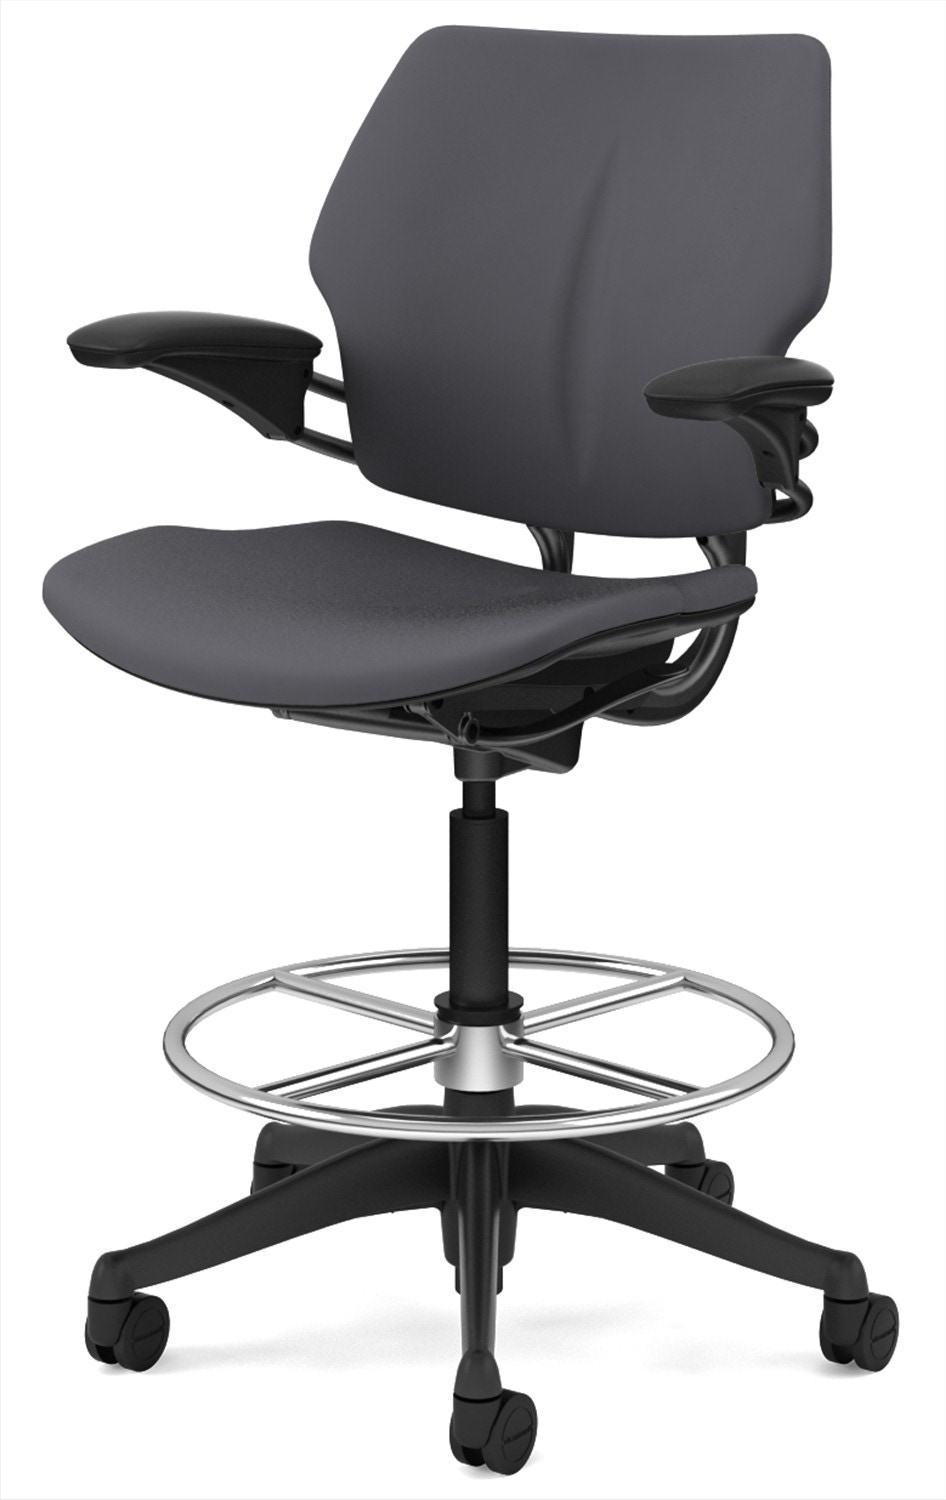 liberty chair scale product side humanscale human vancouver bc